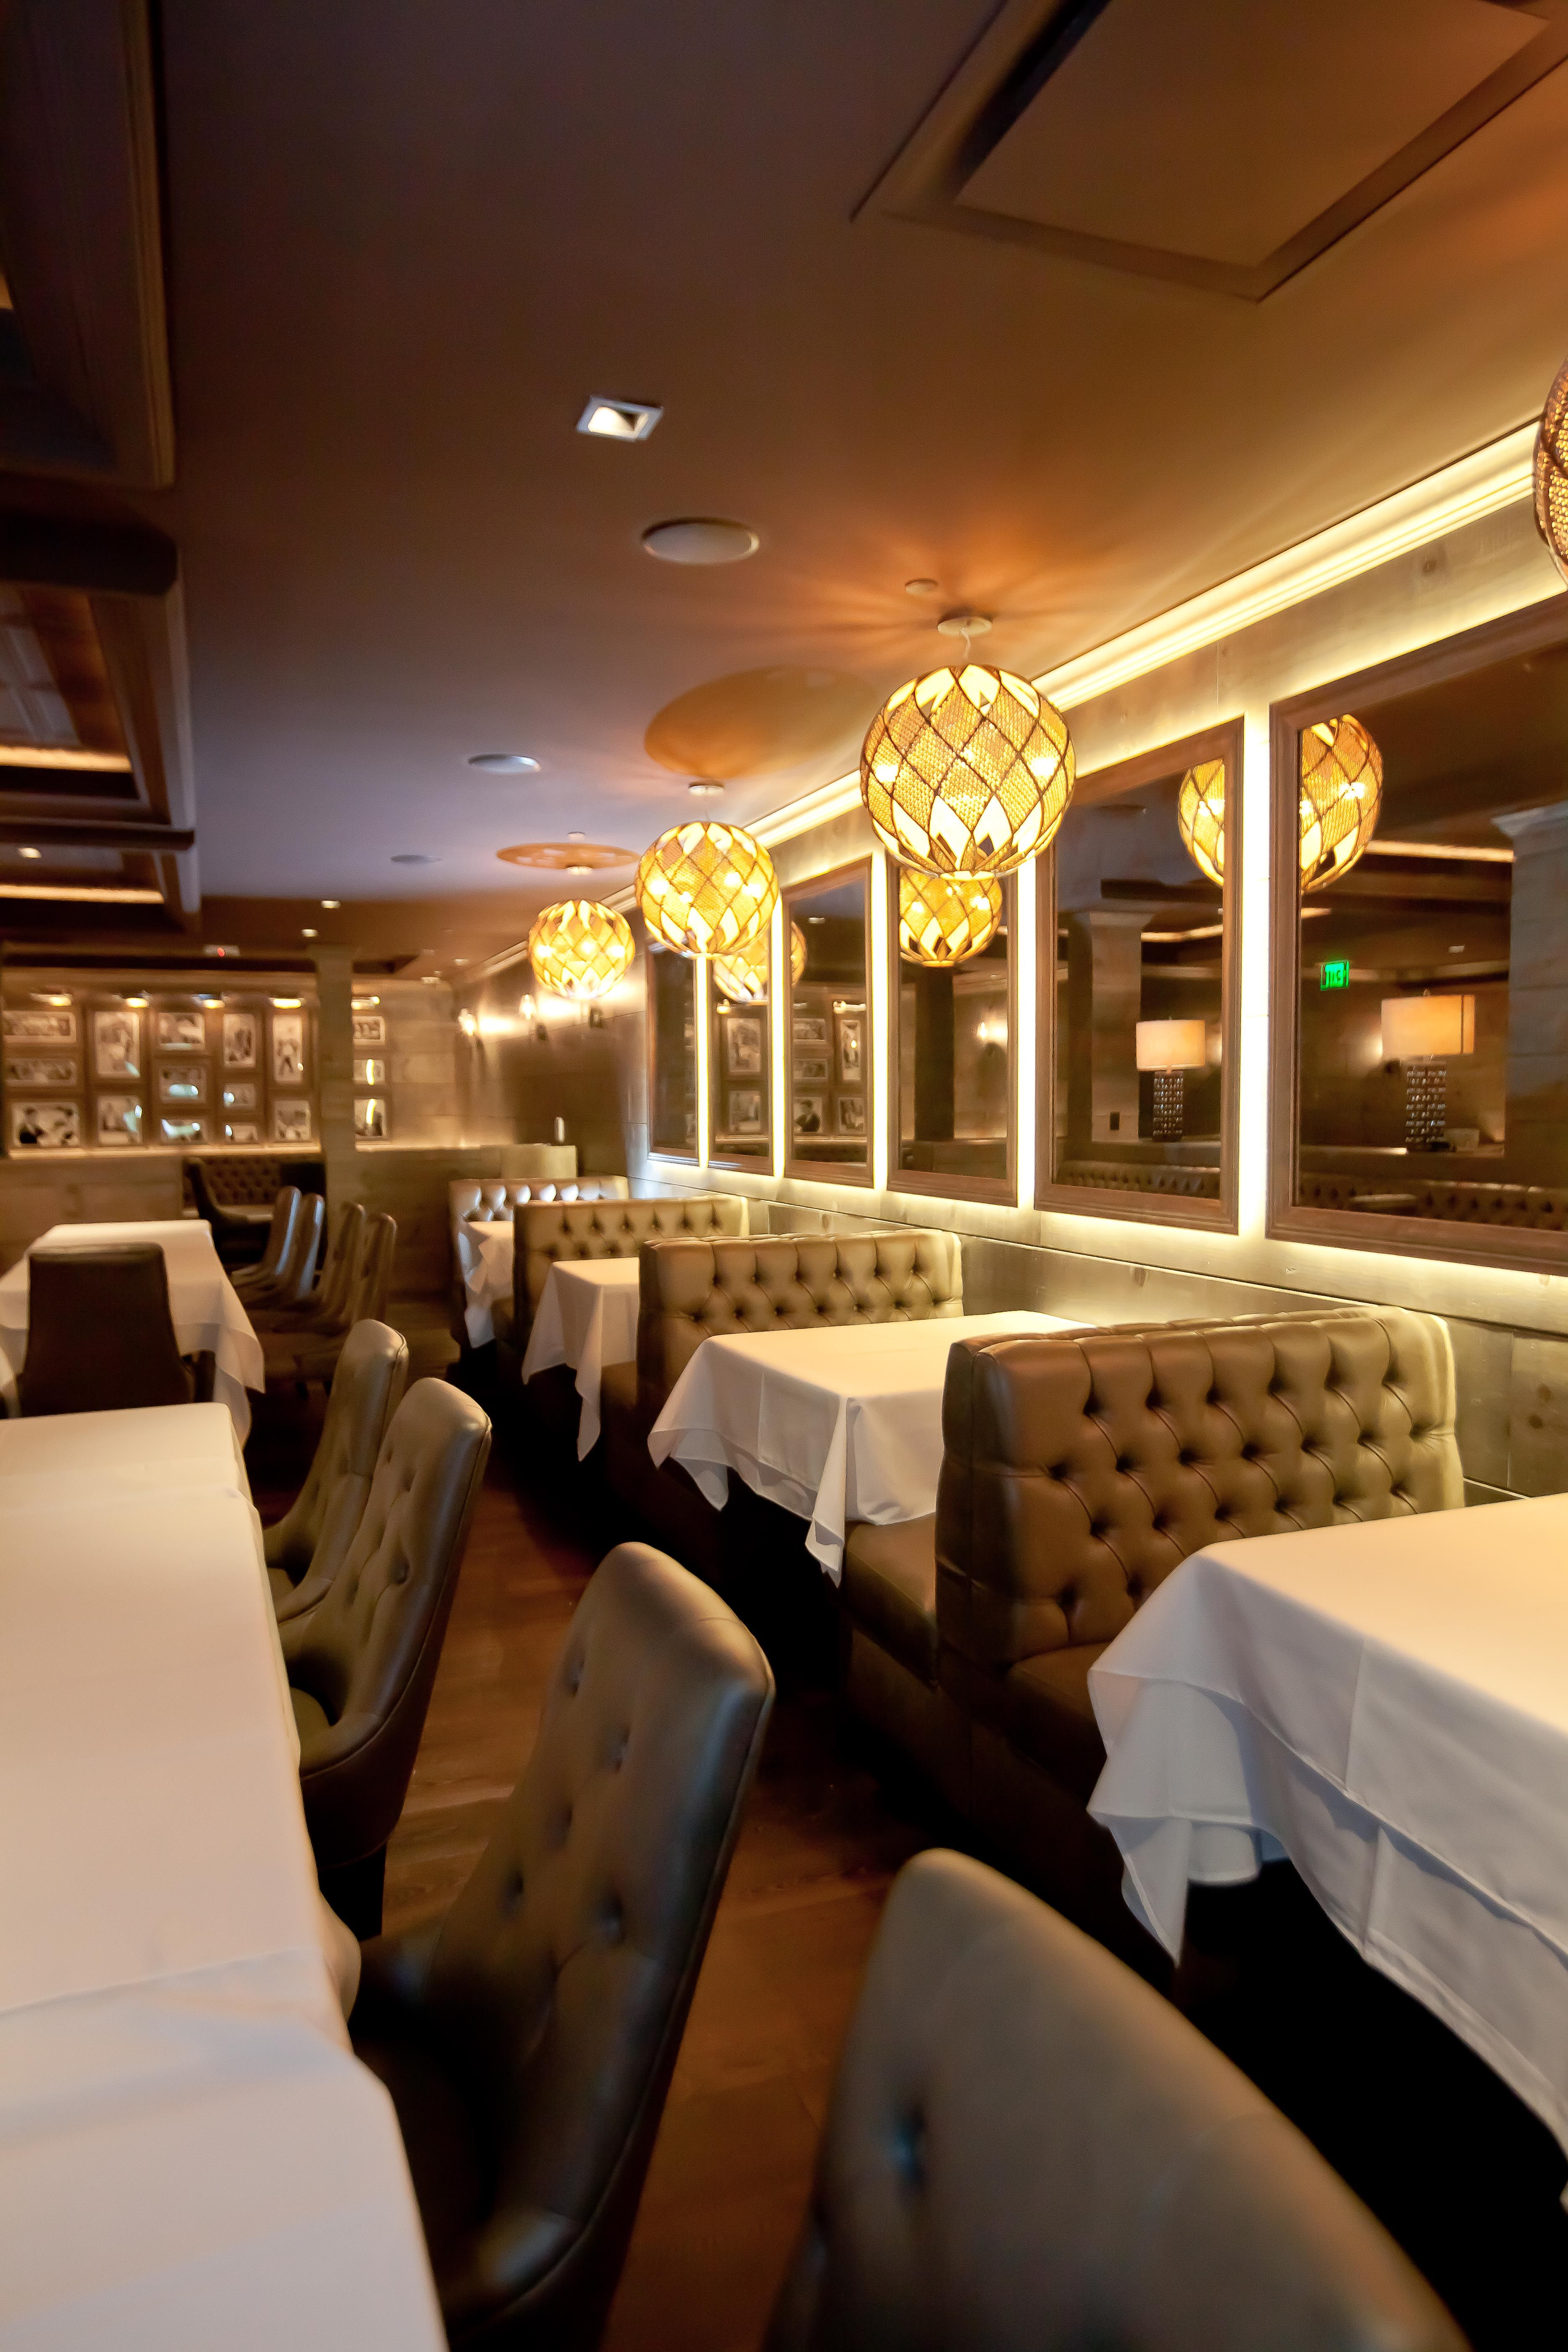 The Gale MIAMI,USA   Restaurant, Dolce, Miami South Beach   Hotel Interior  Design U0026 Custom Furniture   Commercial   Tafted Brown Leather Banquets And  Chairs ...